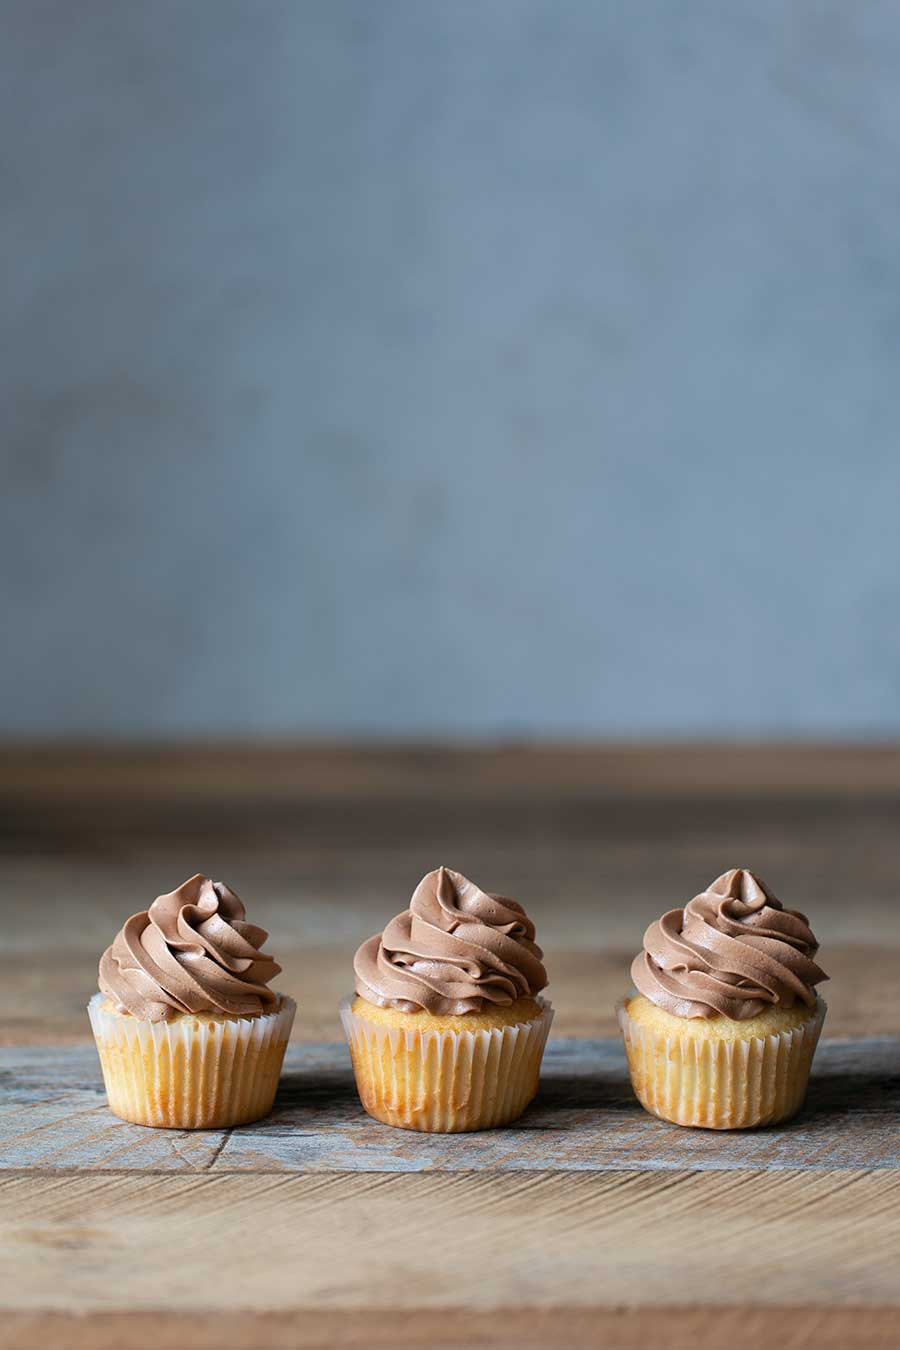 Three vanilla cupcakes with chocolate buttercream